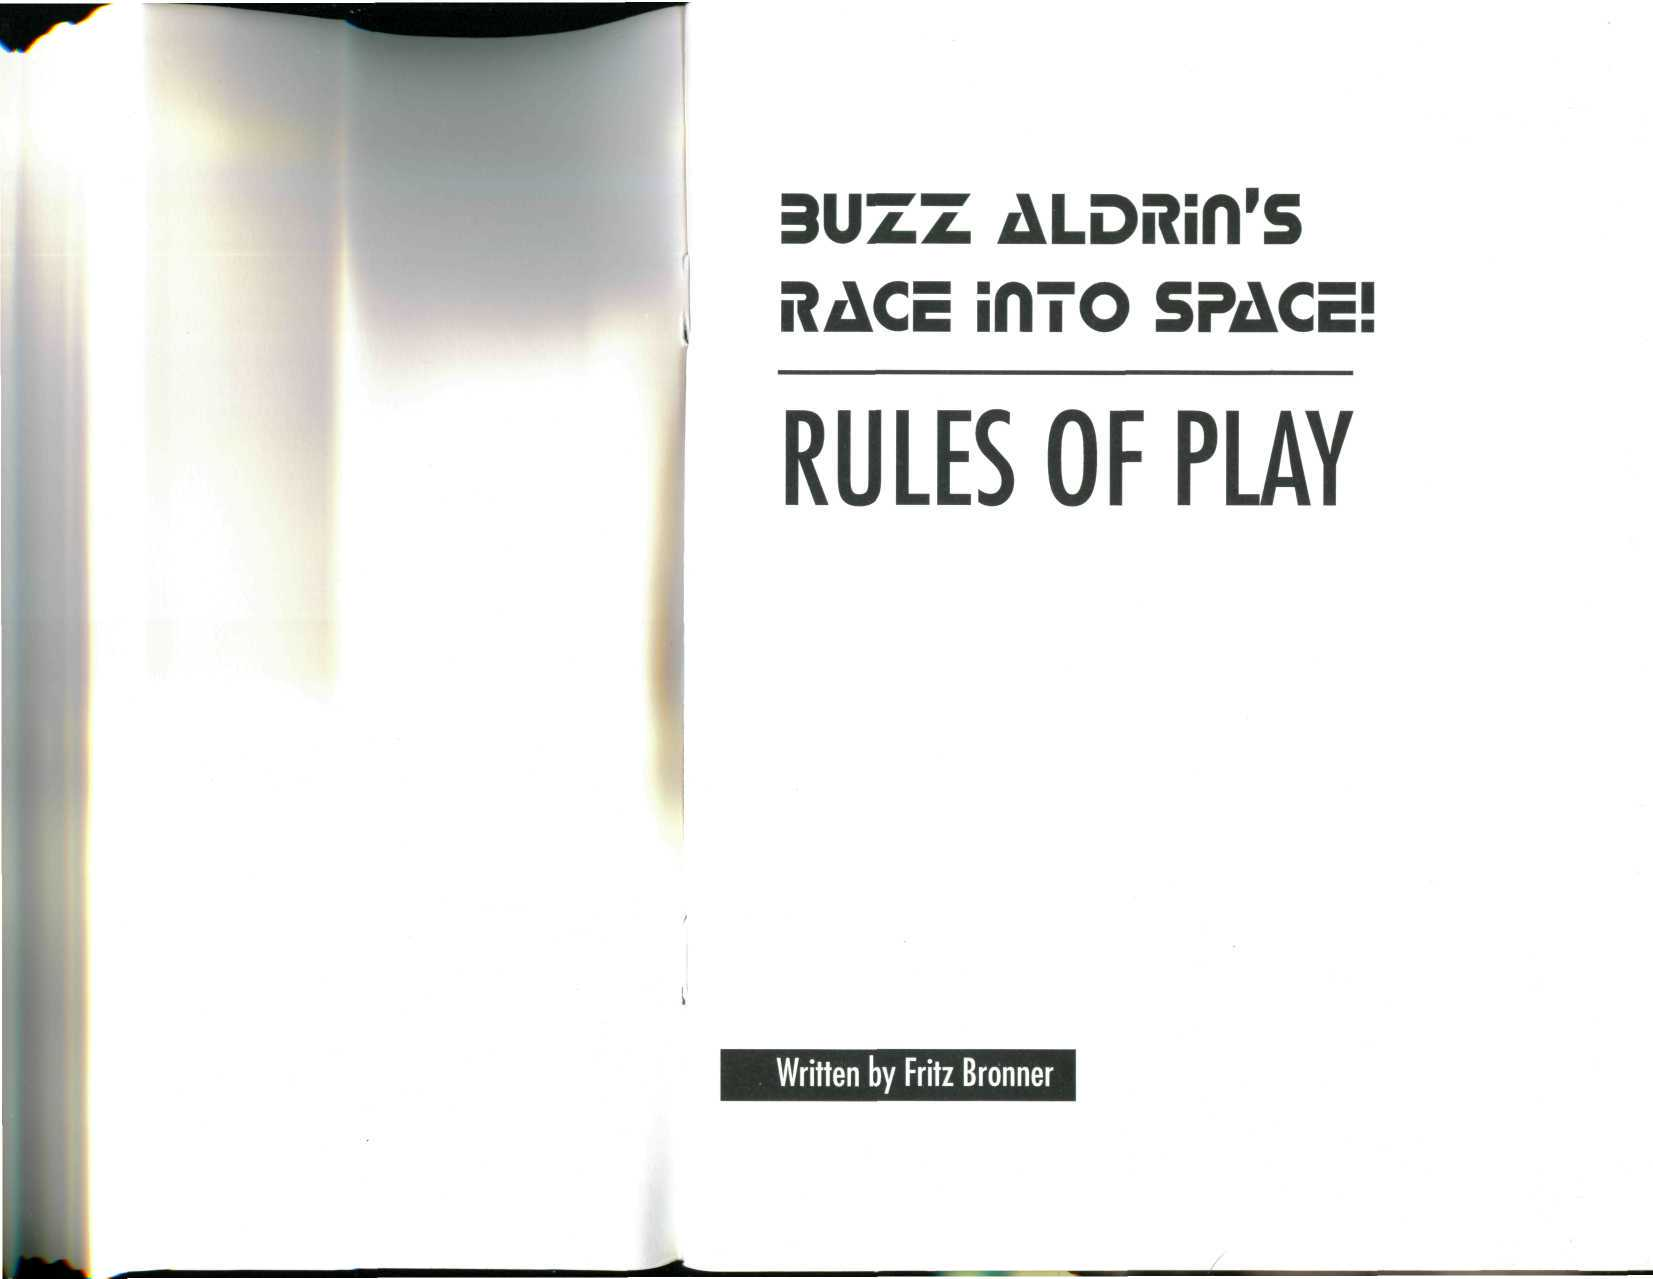 BUZZ ALDRiH'S RACE into SPACE!